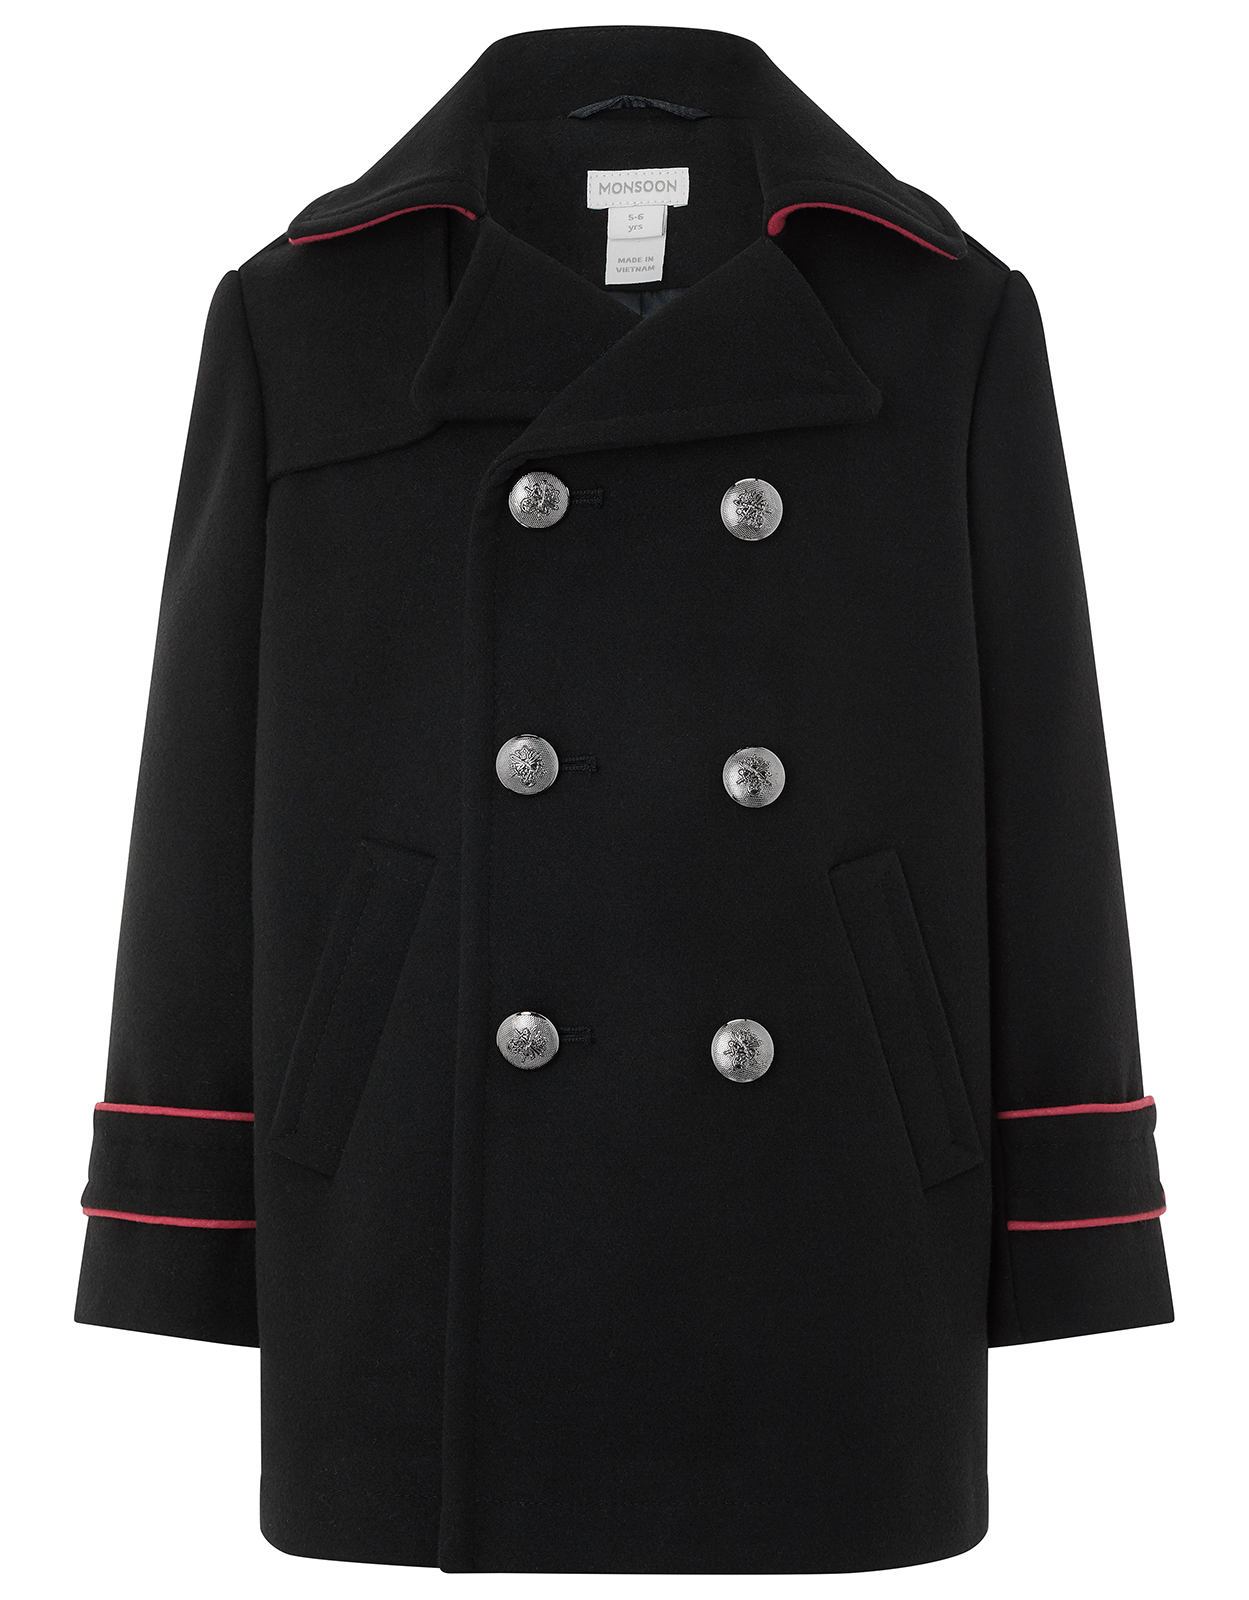 Monsoon Brando Black Pea Coat